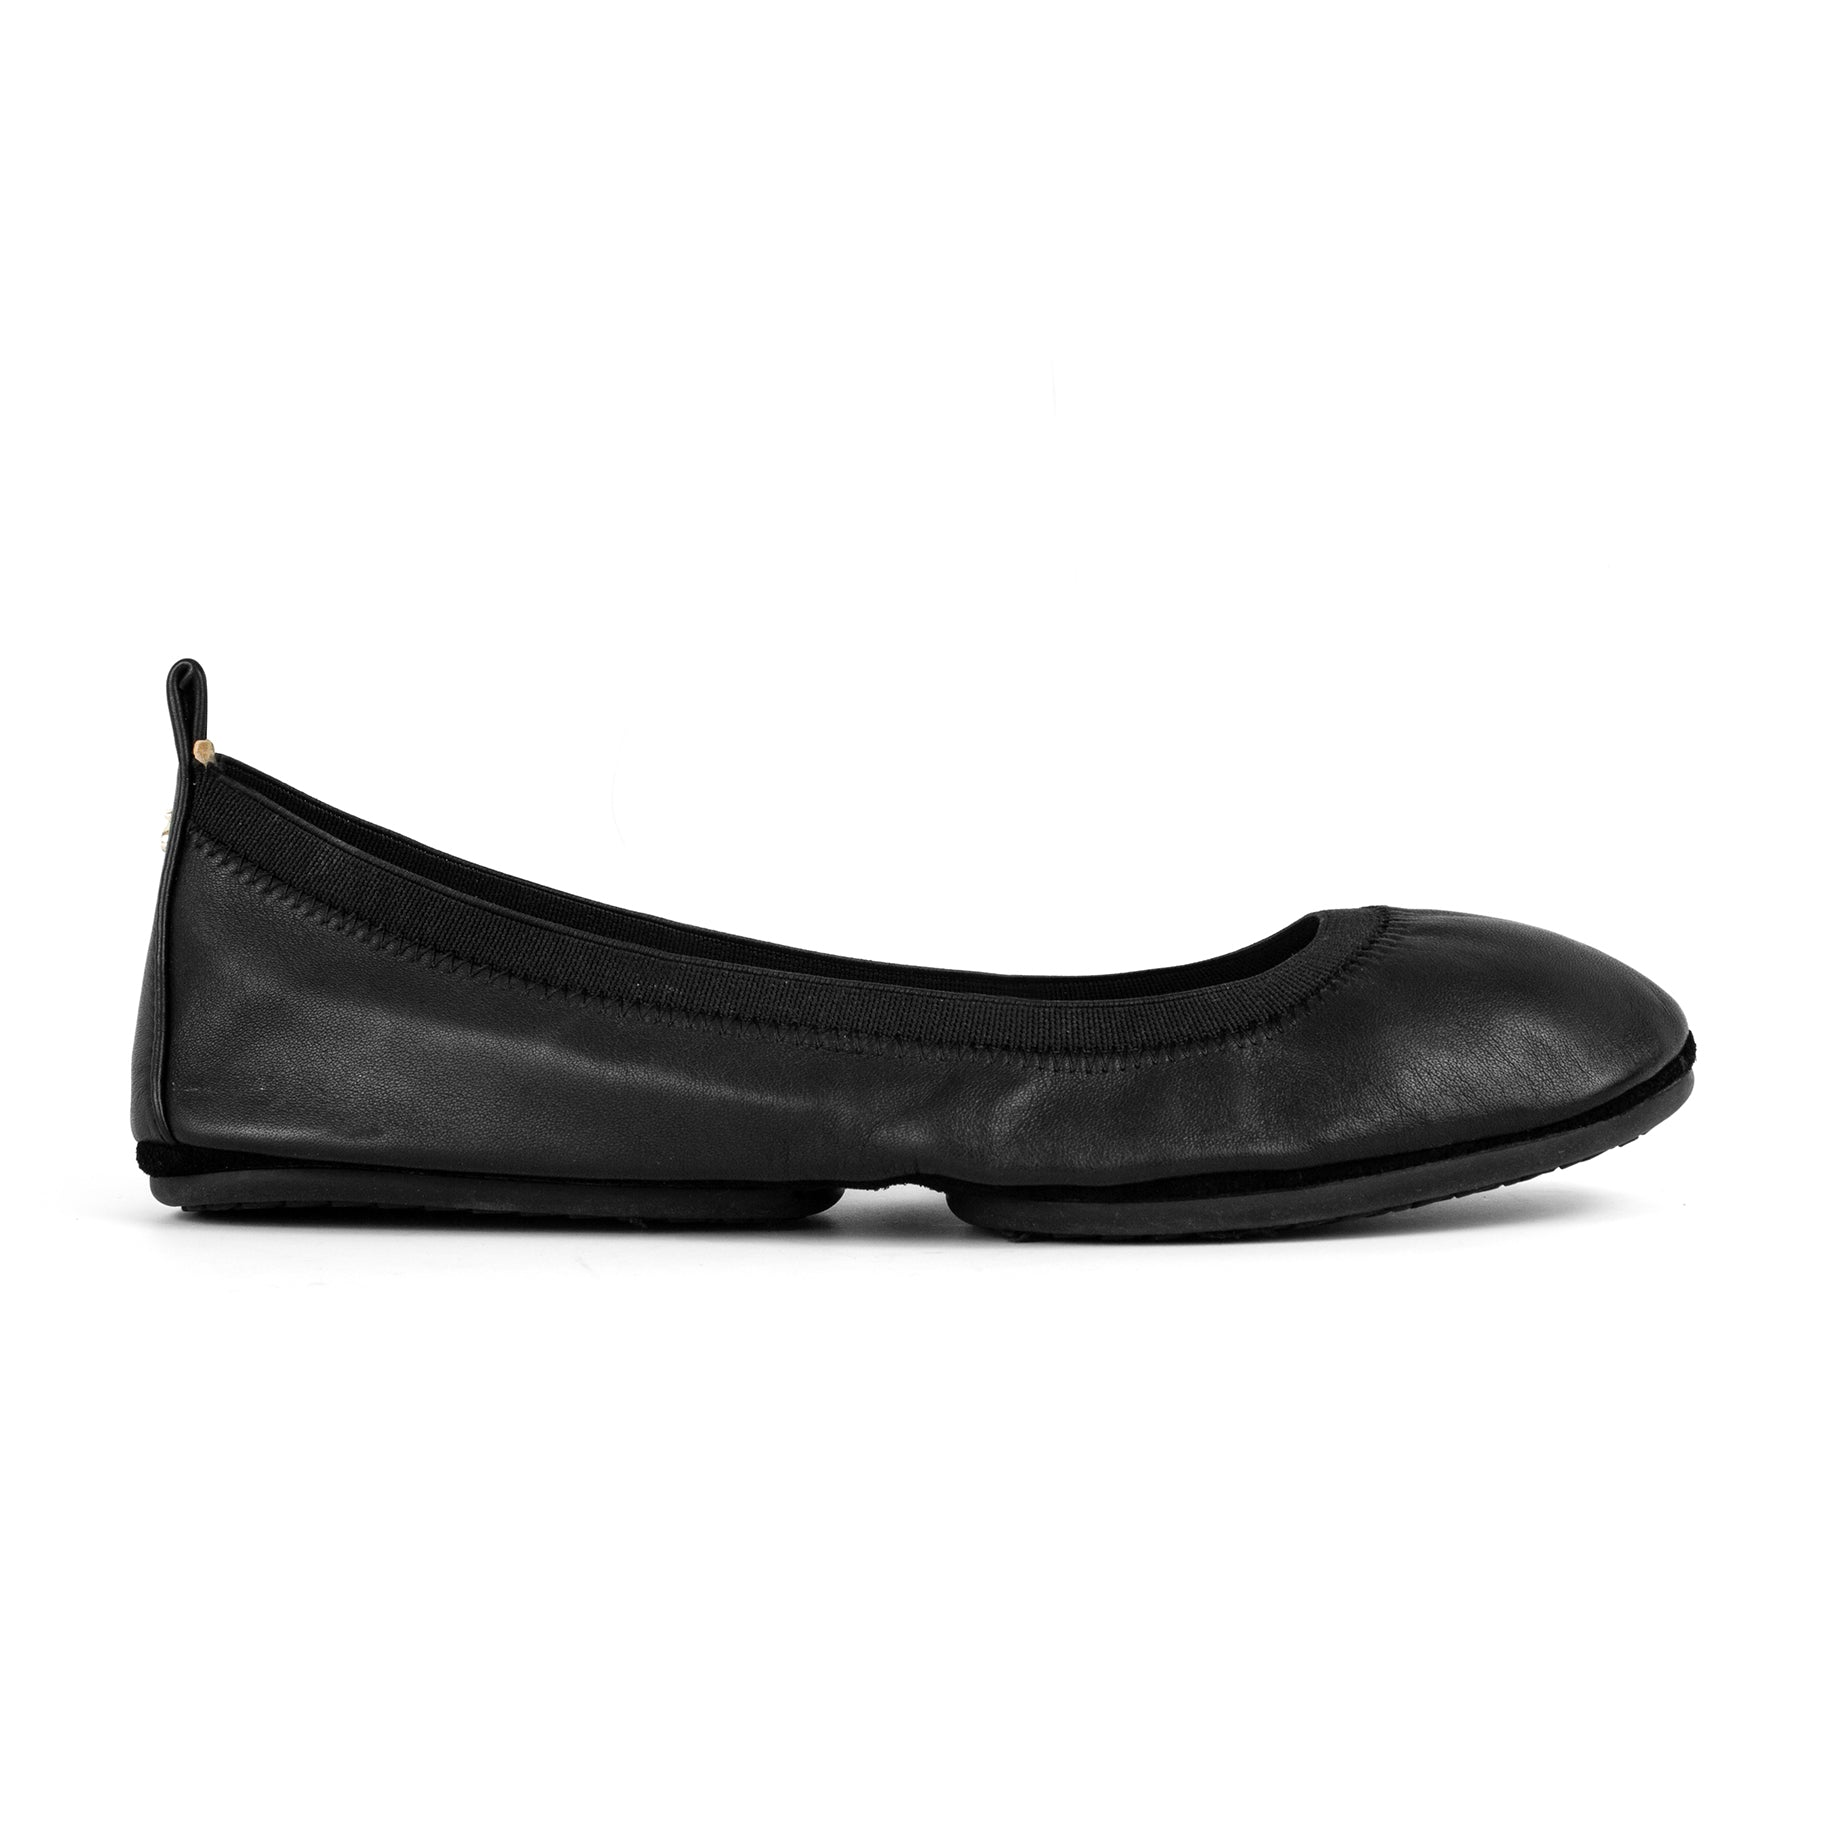 Yosi Samra Black Leather Ballet flat